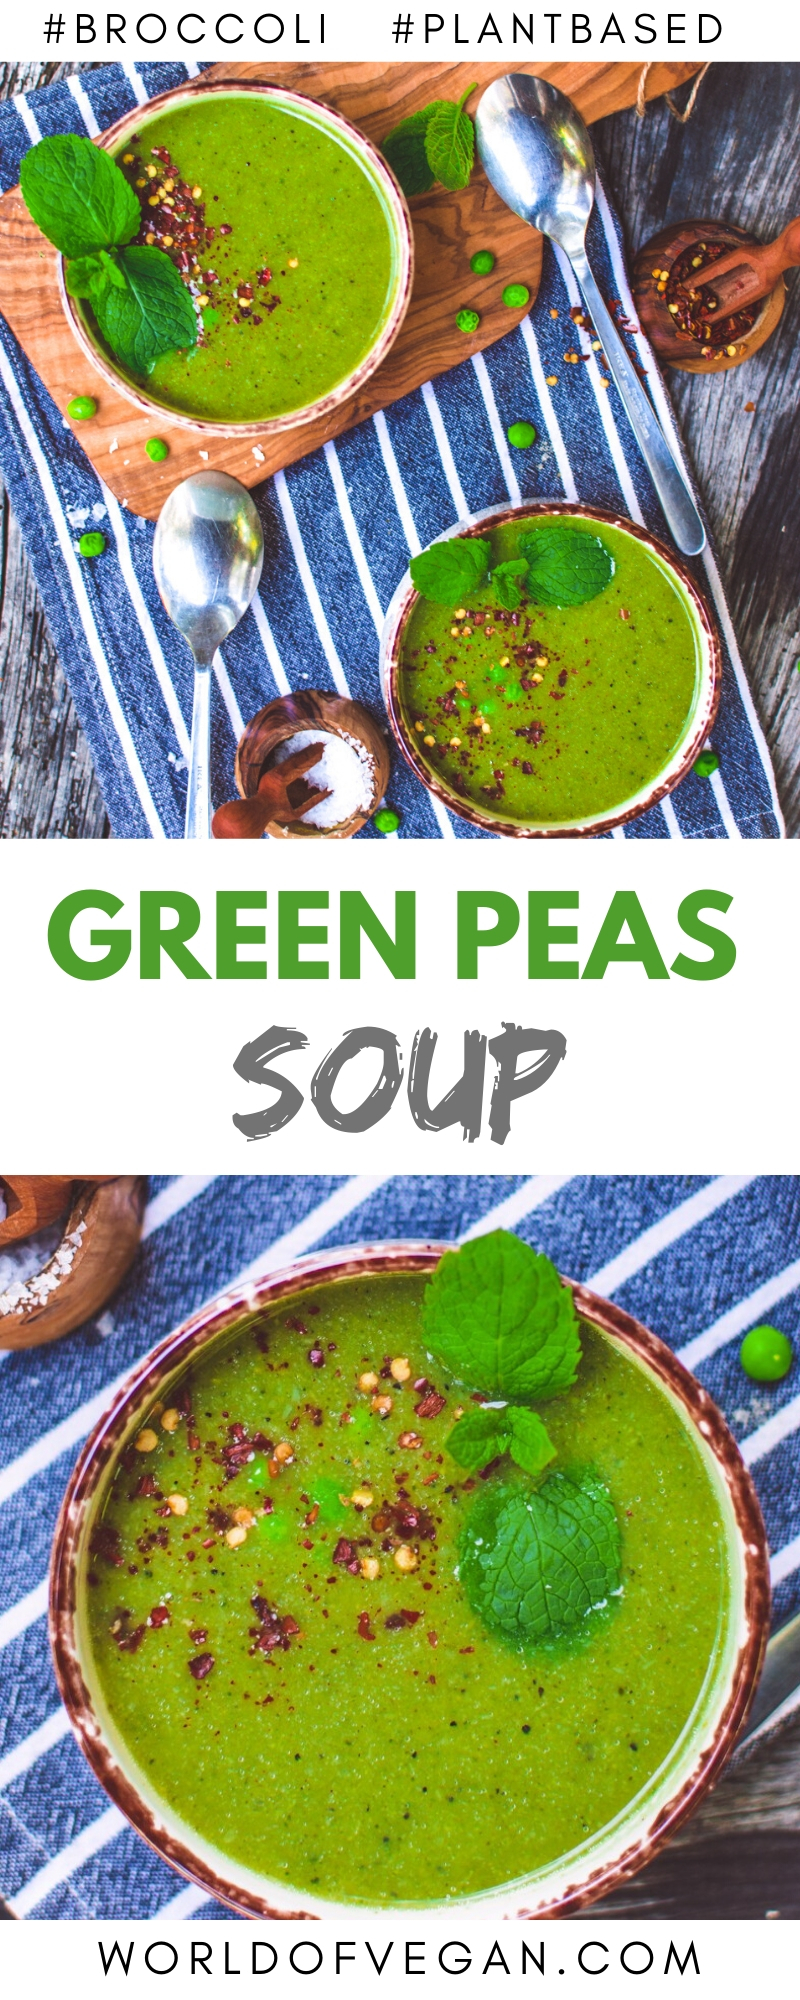 Pea & Broccoli Soup Recipe | Super-Easy Vegan Dinner | #peas #broccoli #soup #winter #fall #worldofvegan